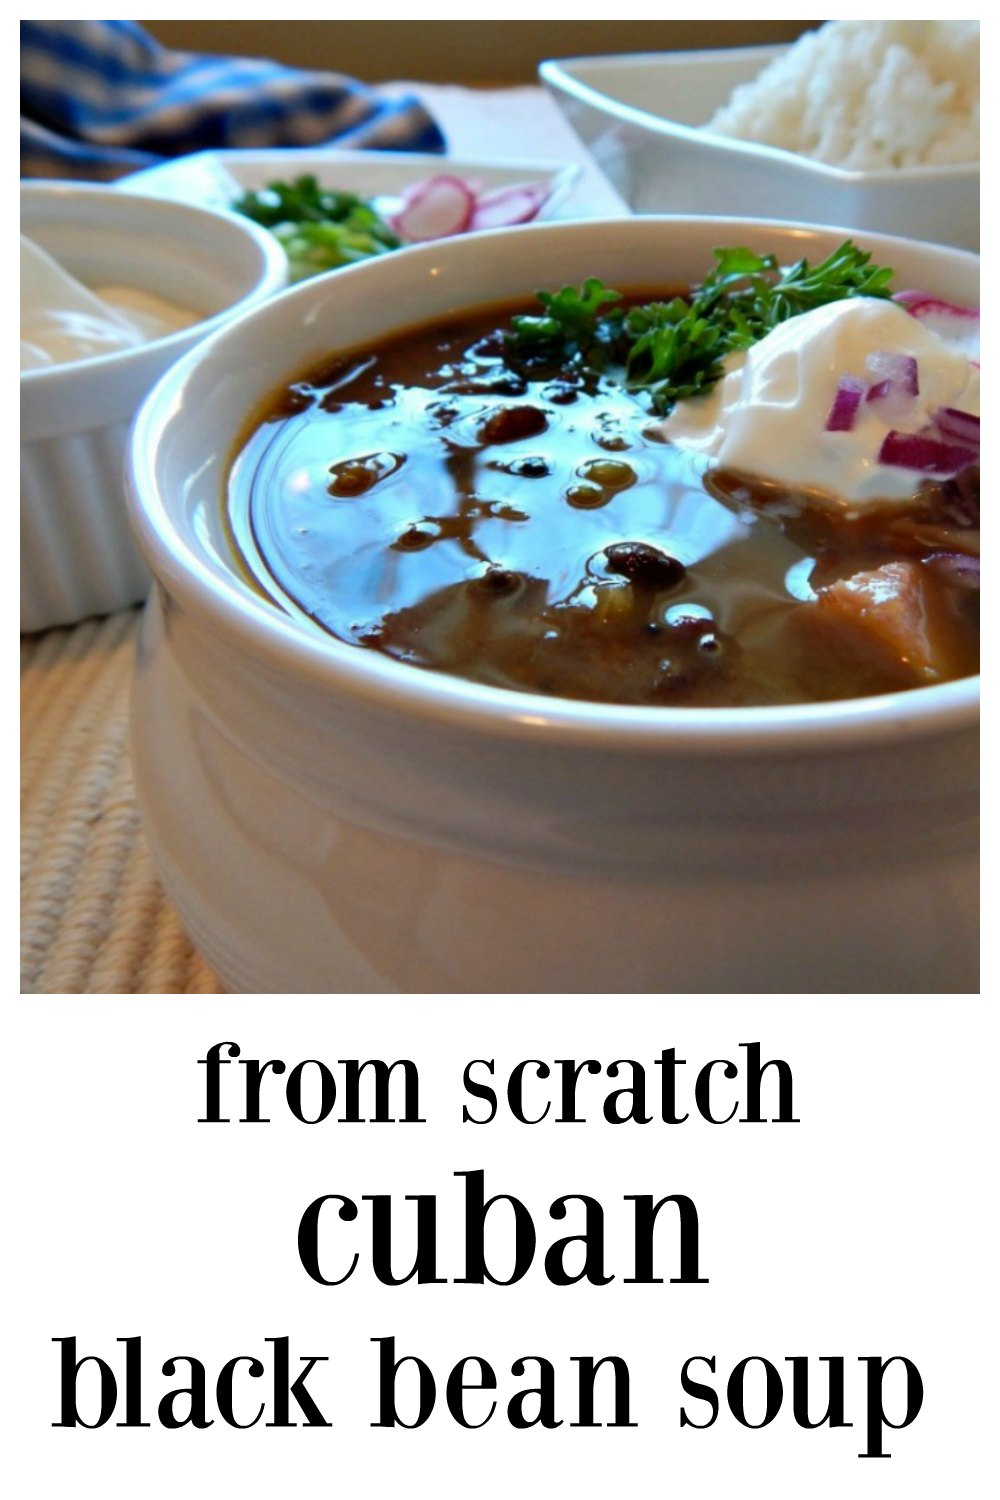 The best Cuban Black Bean Soup, made from scratch using dried beans. It's really glorious, almost addictive! Traditionally served with rice. #BlackBeanSoup #BestBlackBeanSoup #ScratchBlackBeanSoup #CubanRecipes #CubanBeanSoup #CubanBlackBeanSoup